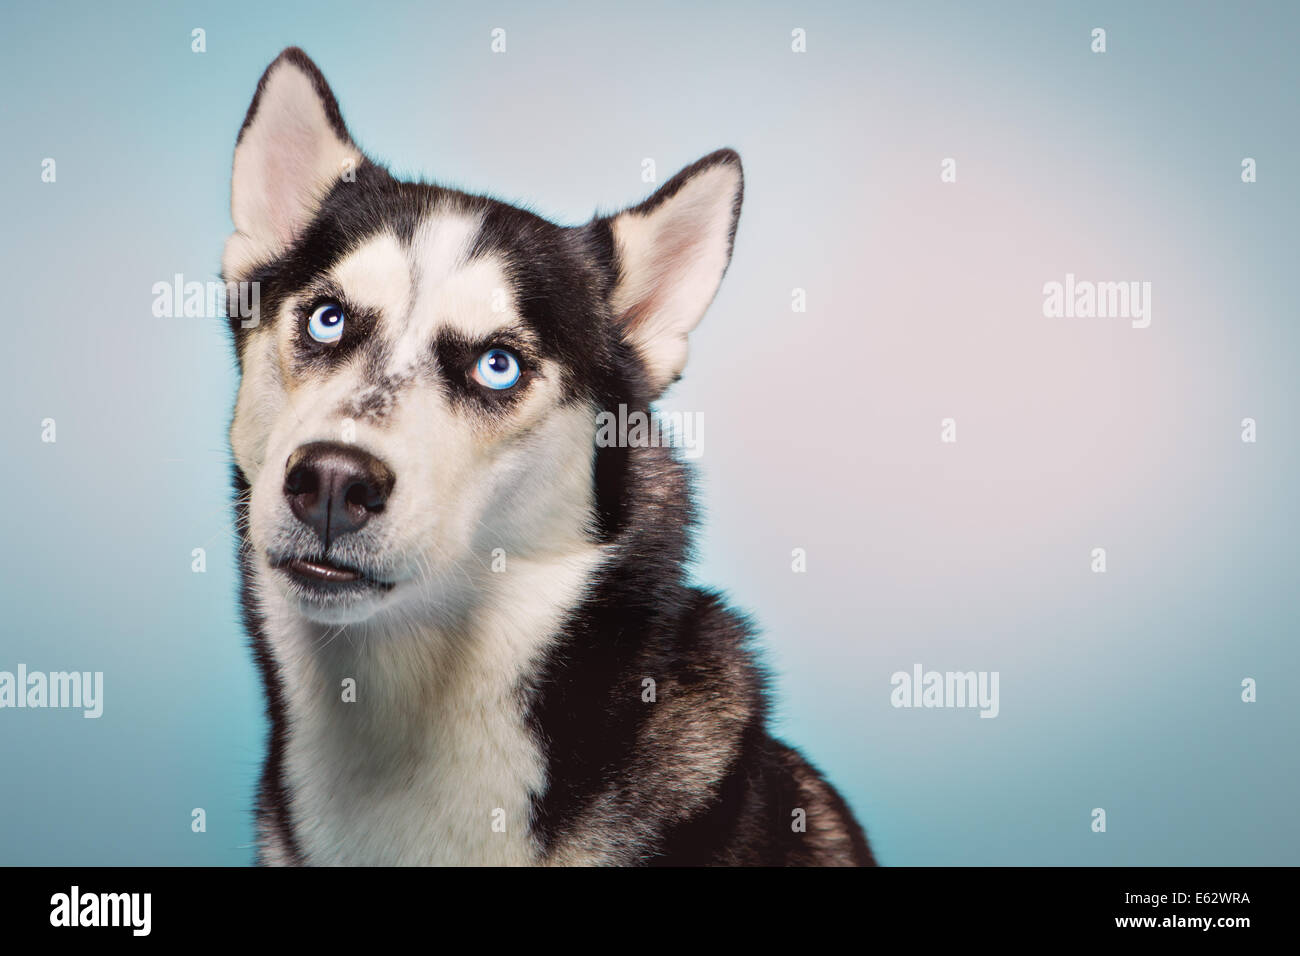 Siberian husky looks upward, remorsefully - Stock Image